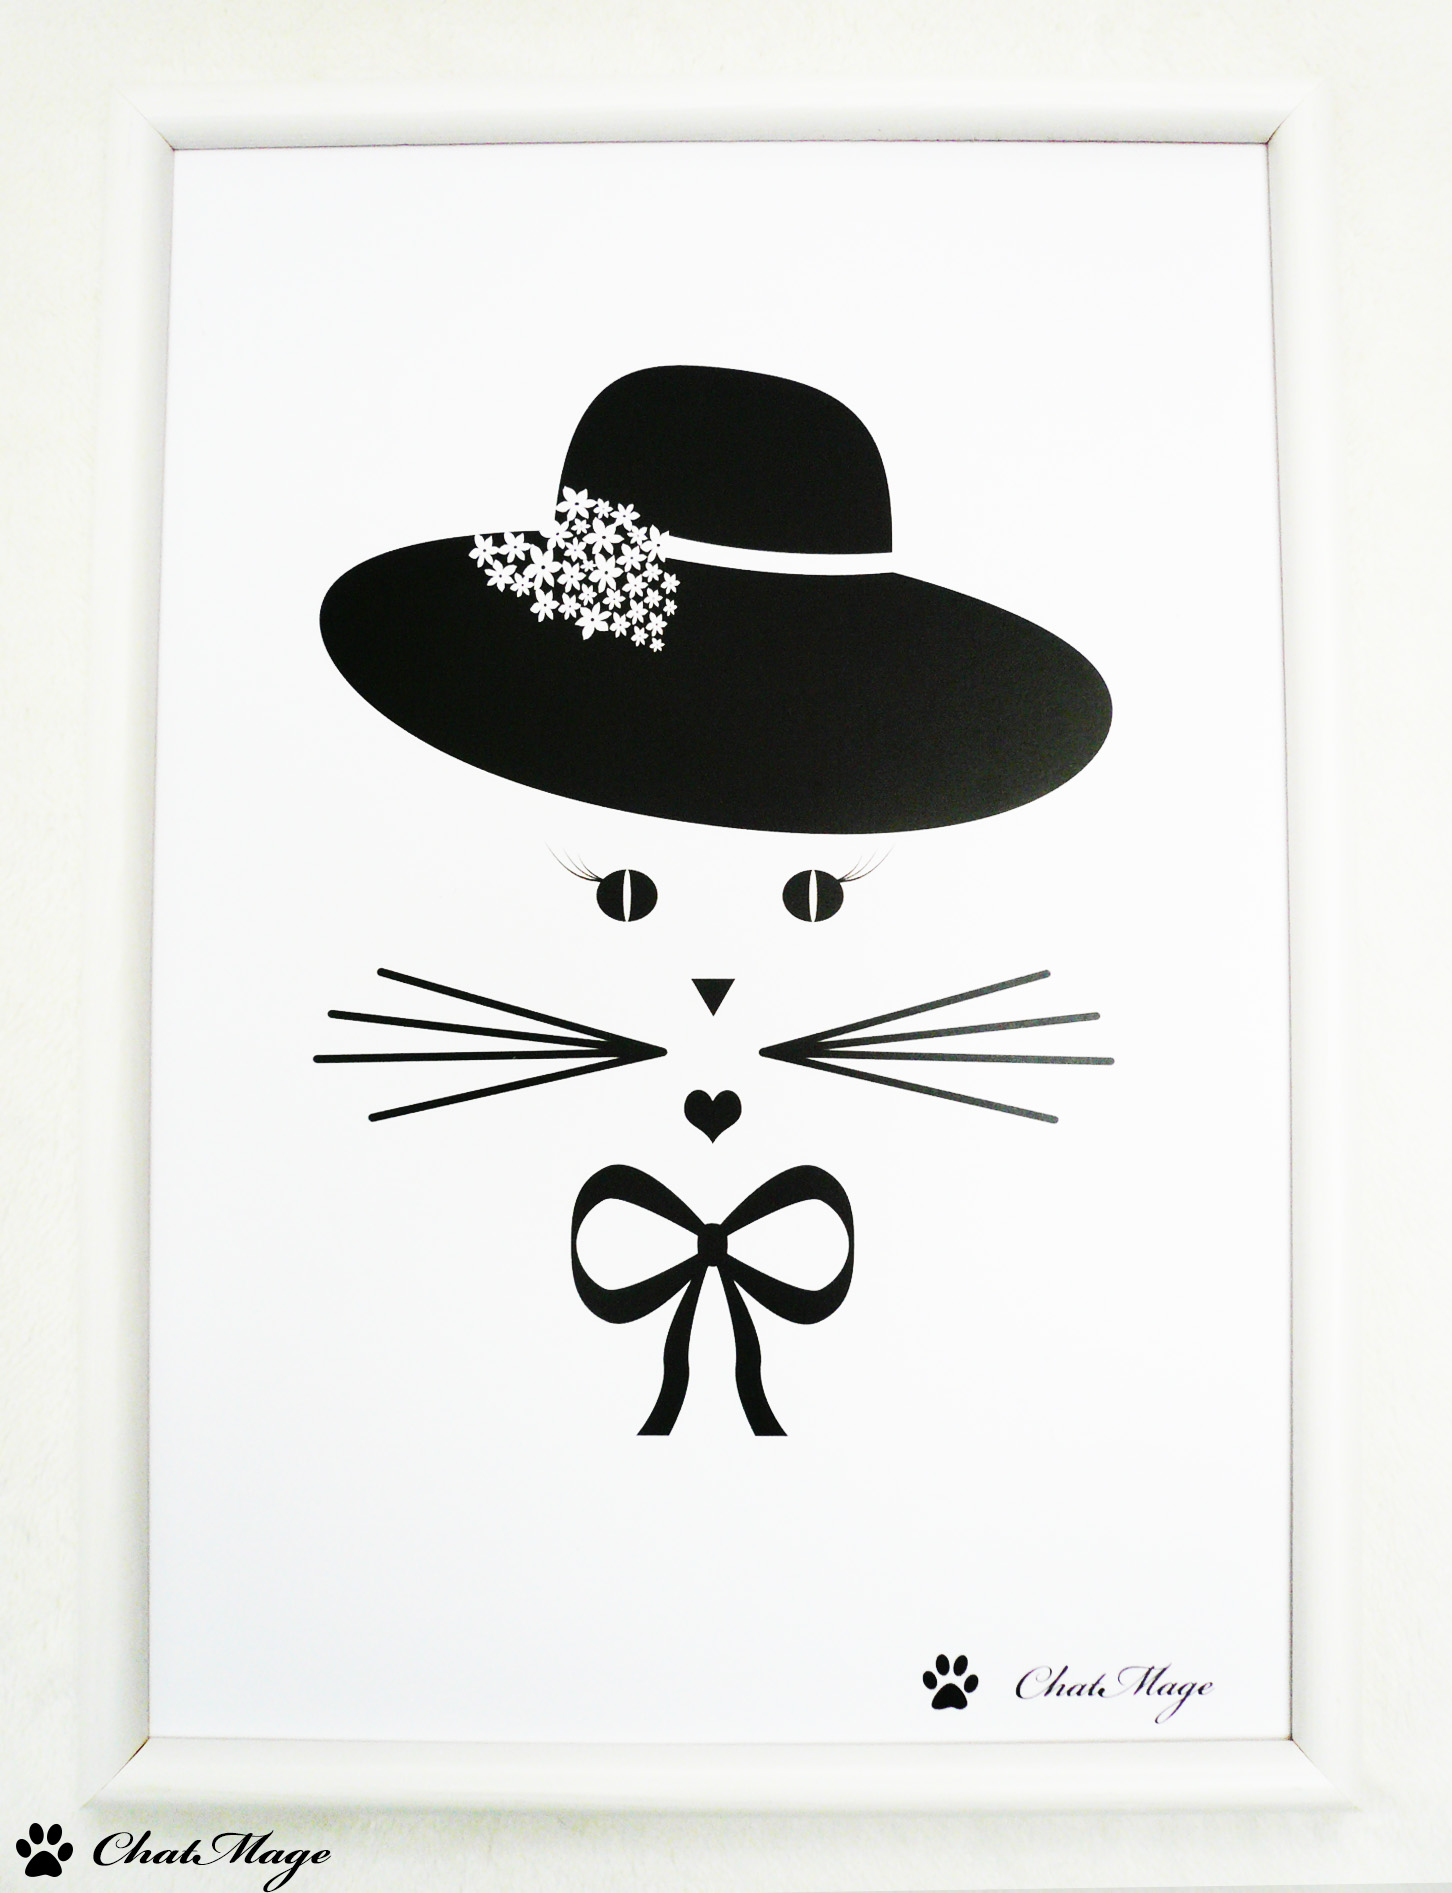 Madame ChatMage, chat, cat, Lady, ChatMage